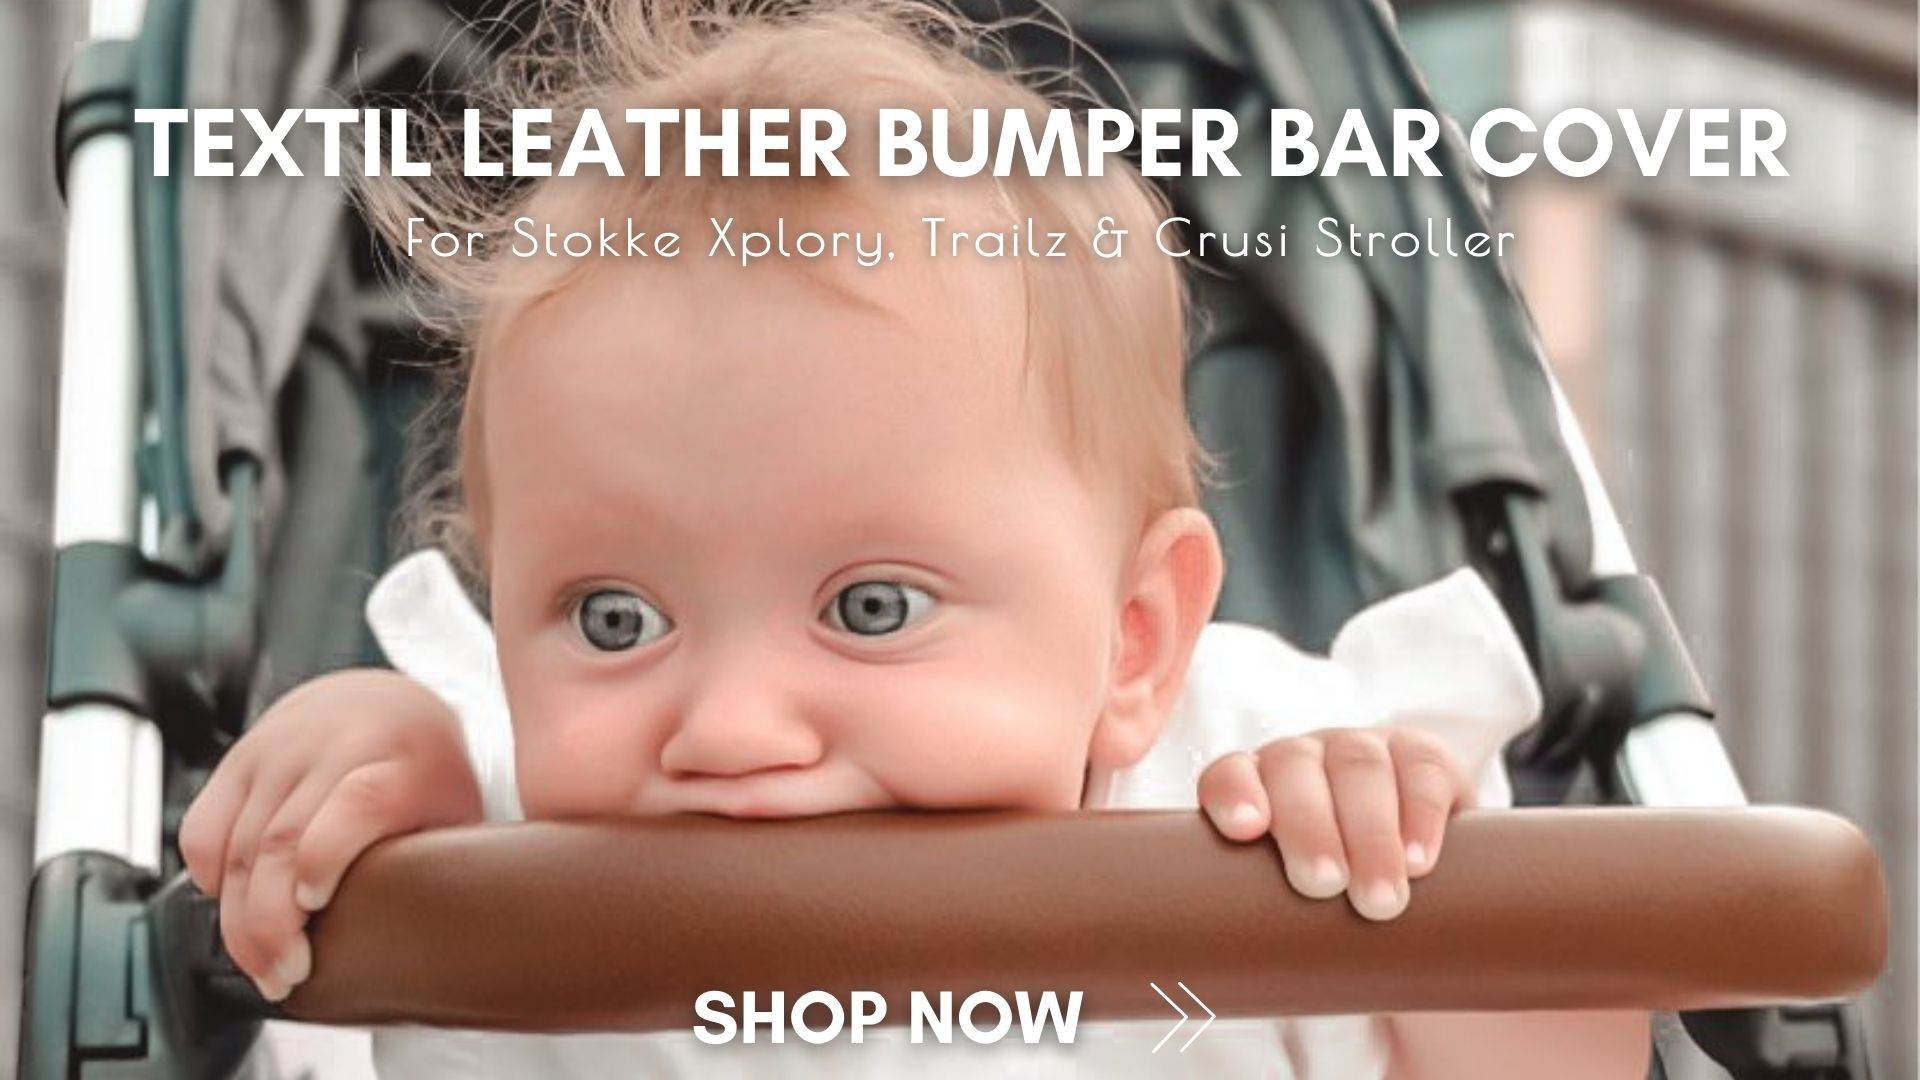 Amazing textil leather bumper bar cover for Stokke Xplory, Trailz and Crusi Strollers.